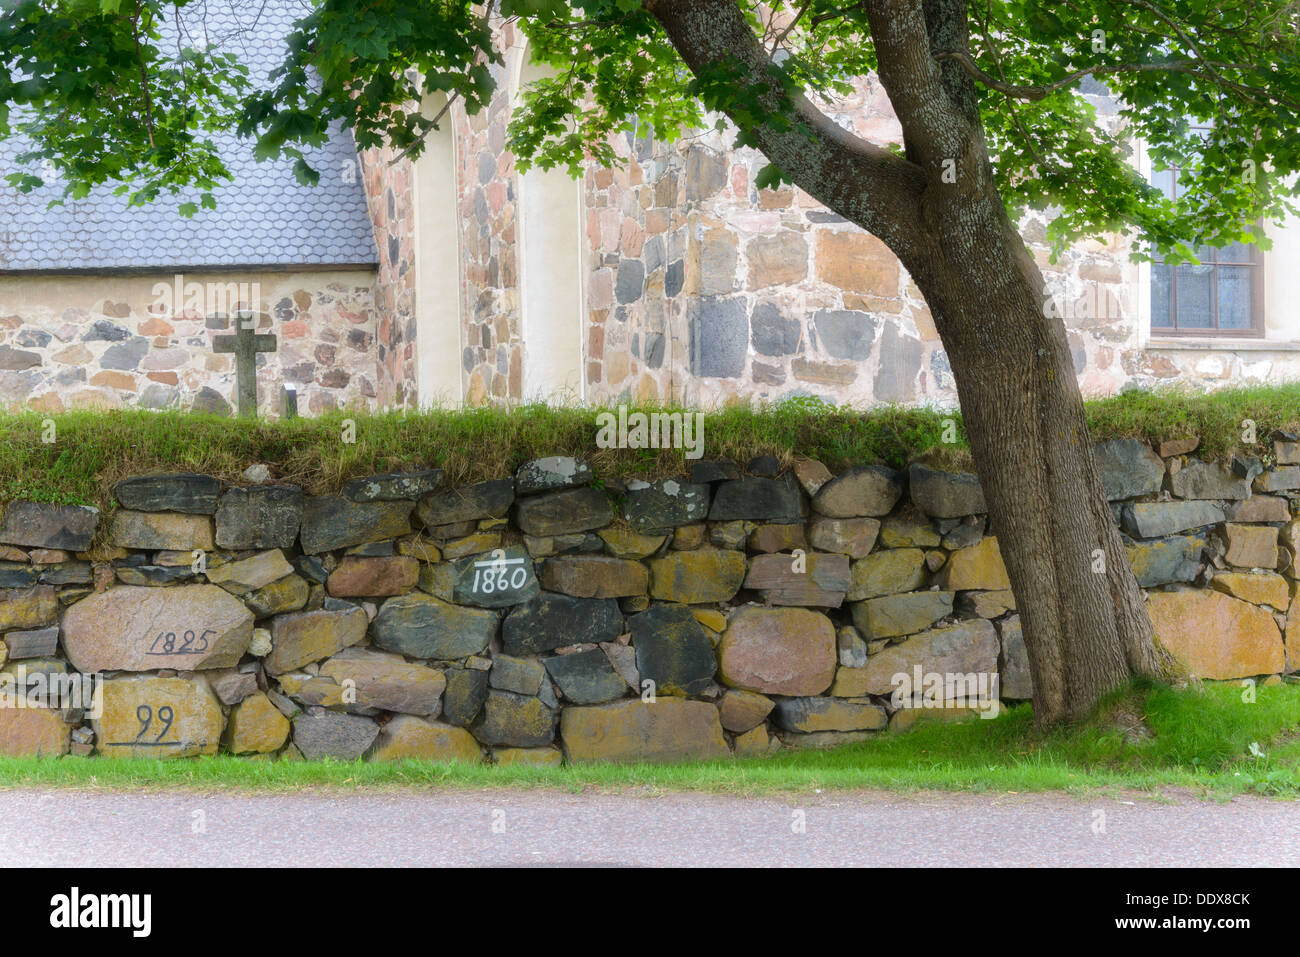 Dry stone wall and tree with church, Torsång, Dalarna, Sweden - Stock Image